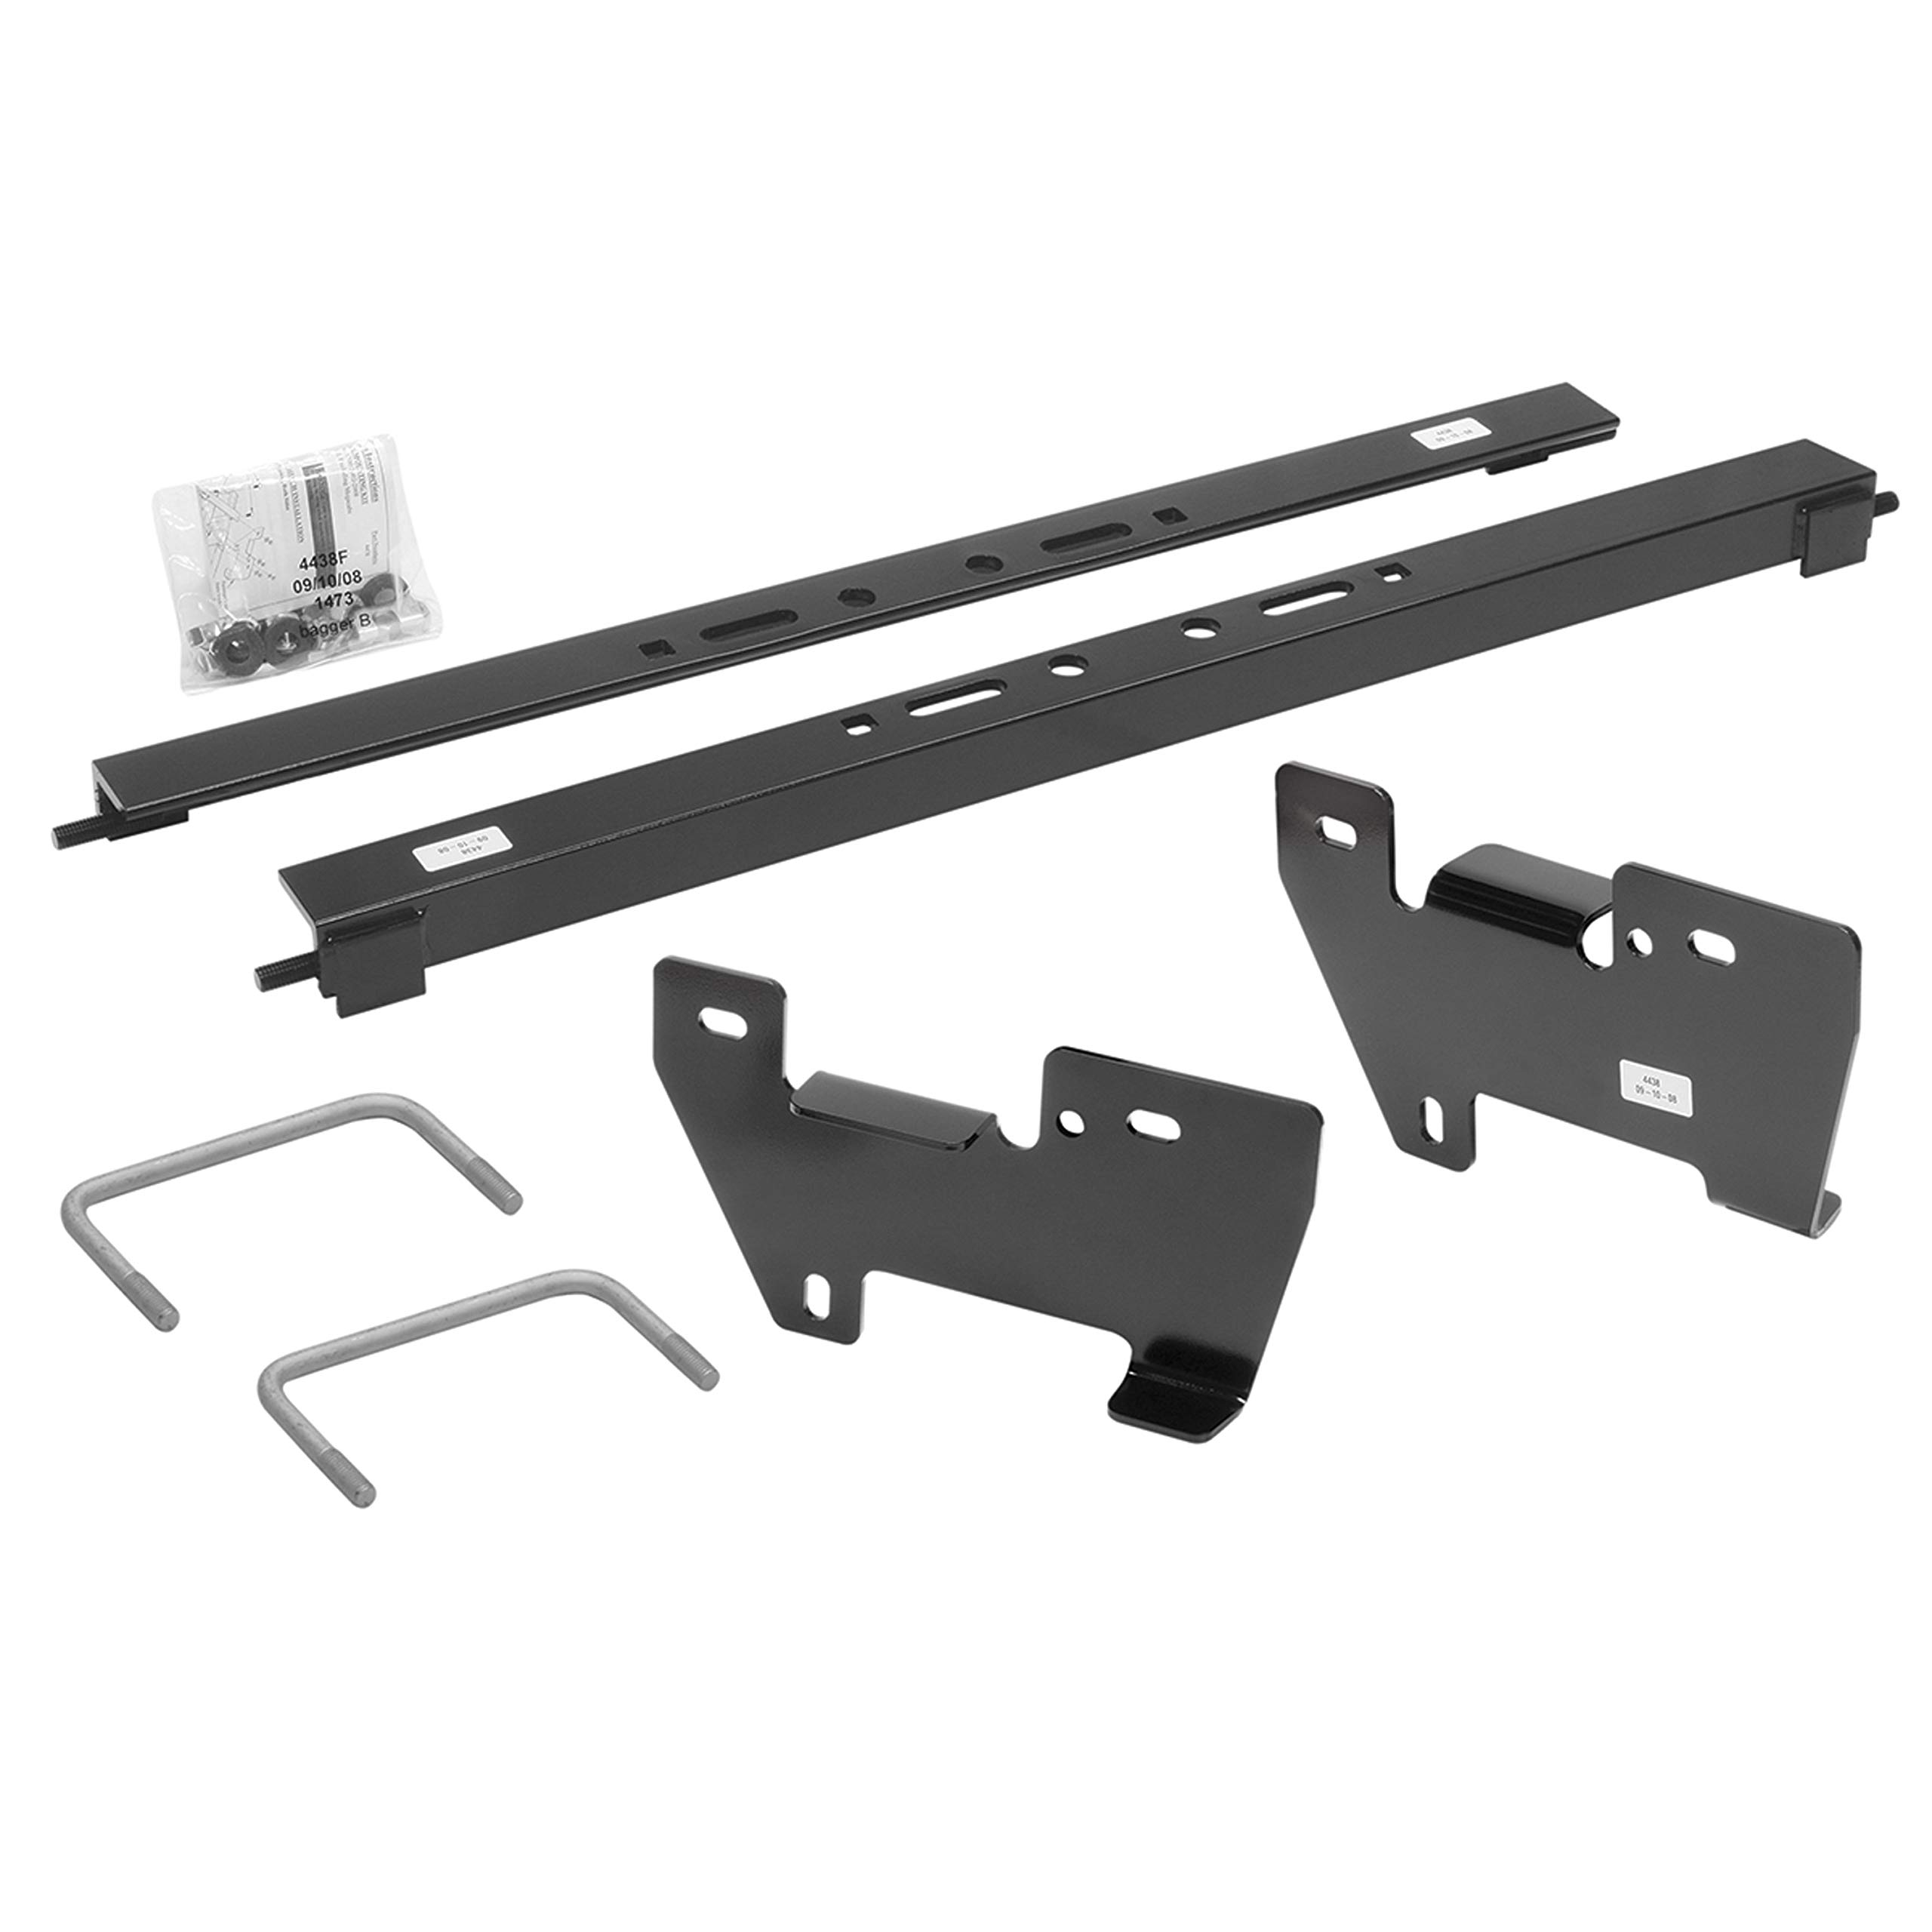 Draw-Tite 4438 Gooseneck Rail Kit for Dodge/Ram by Draw-Tite